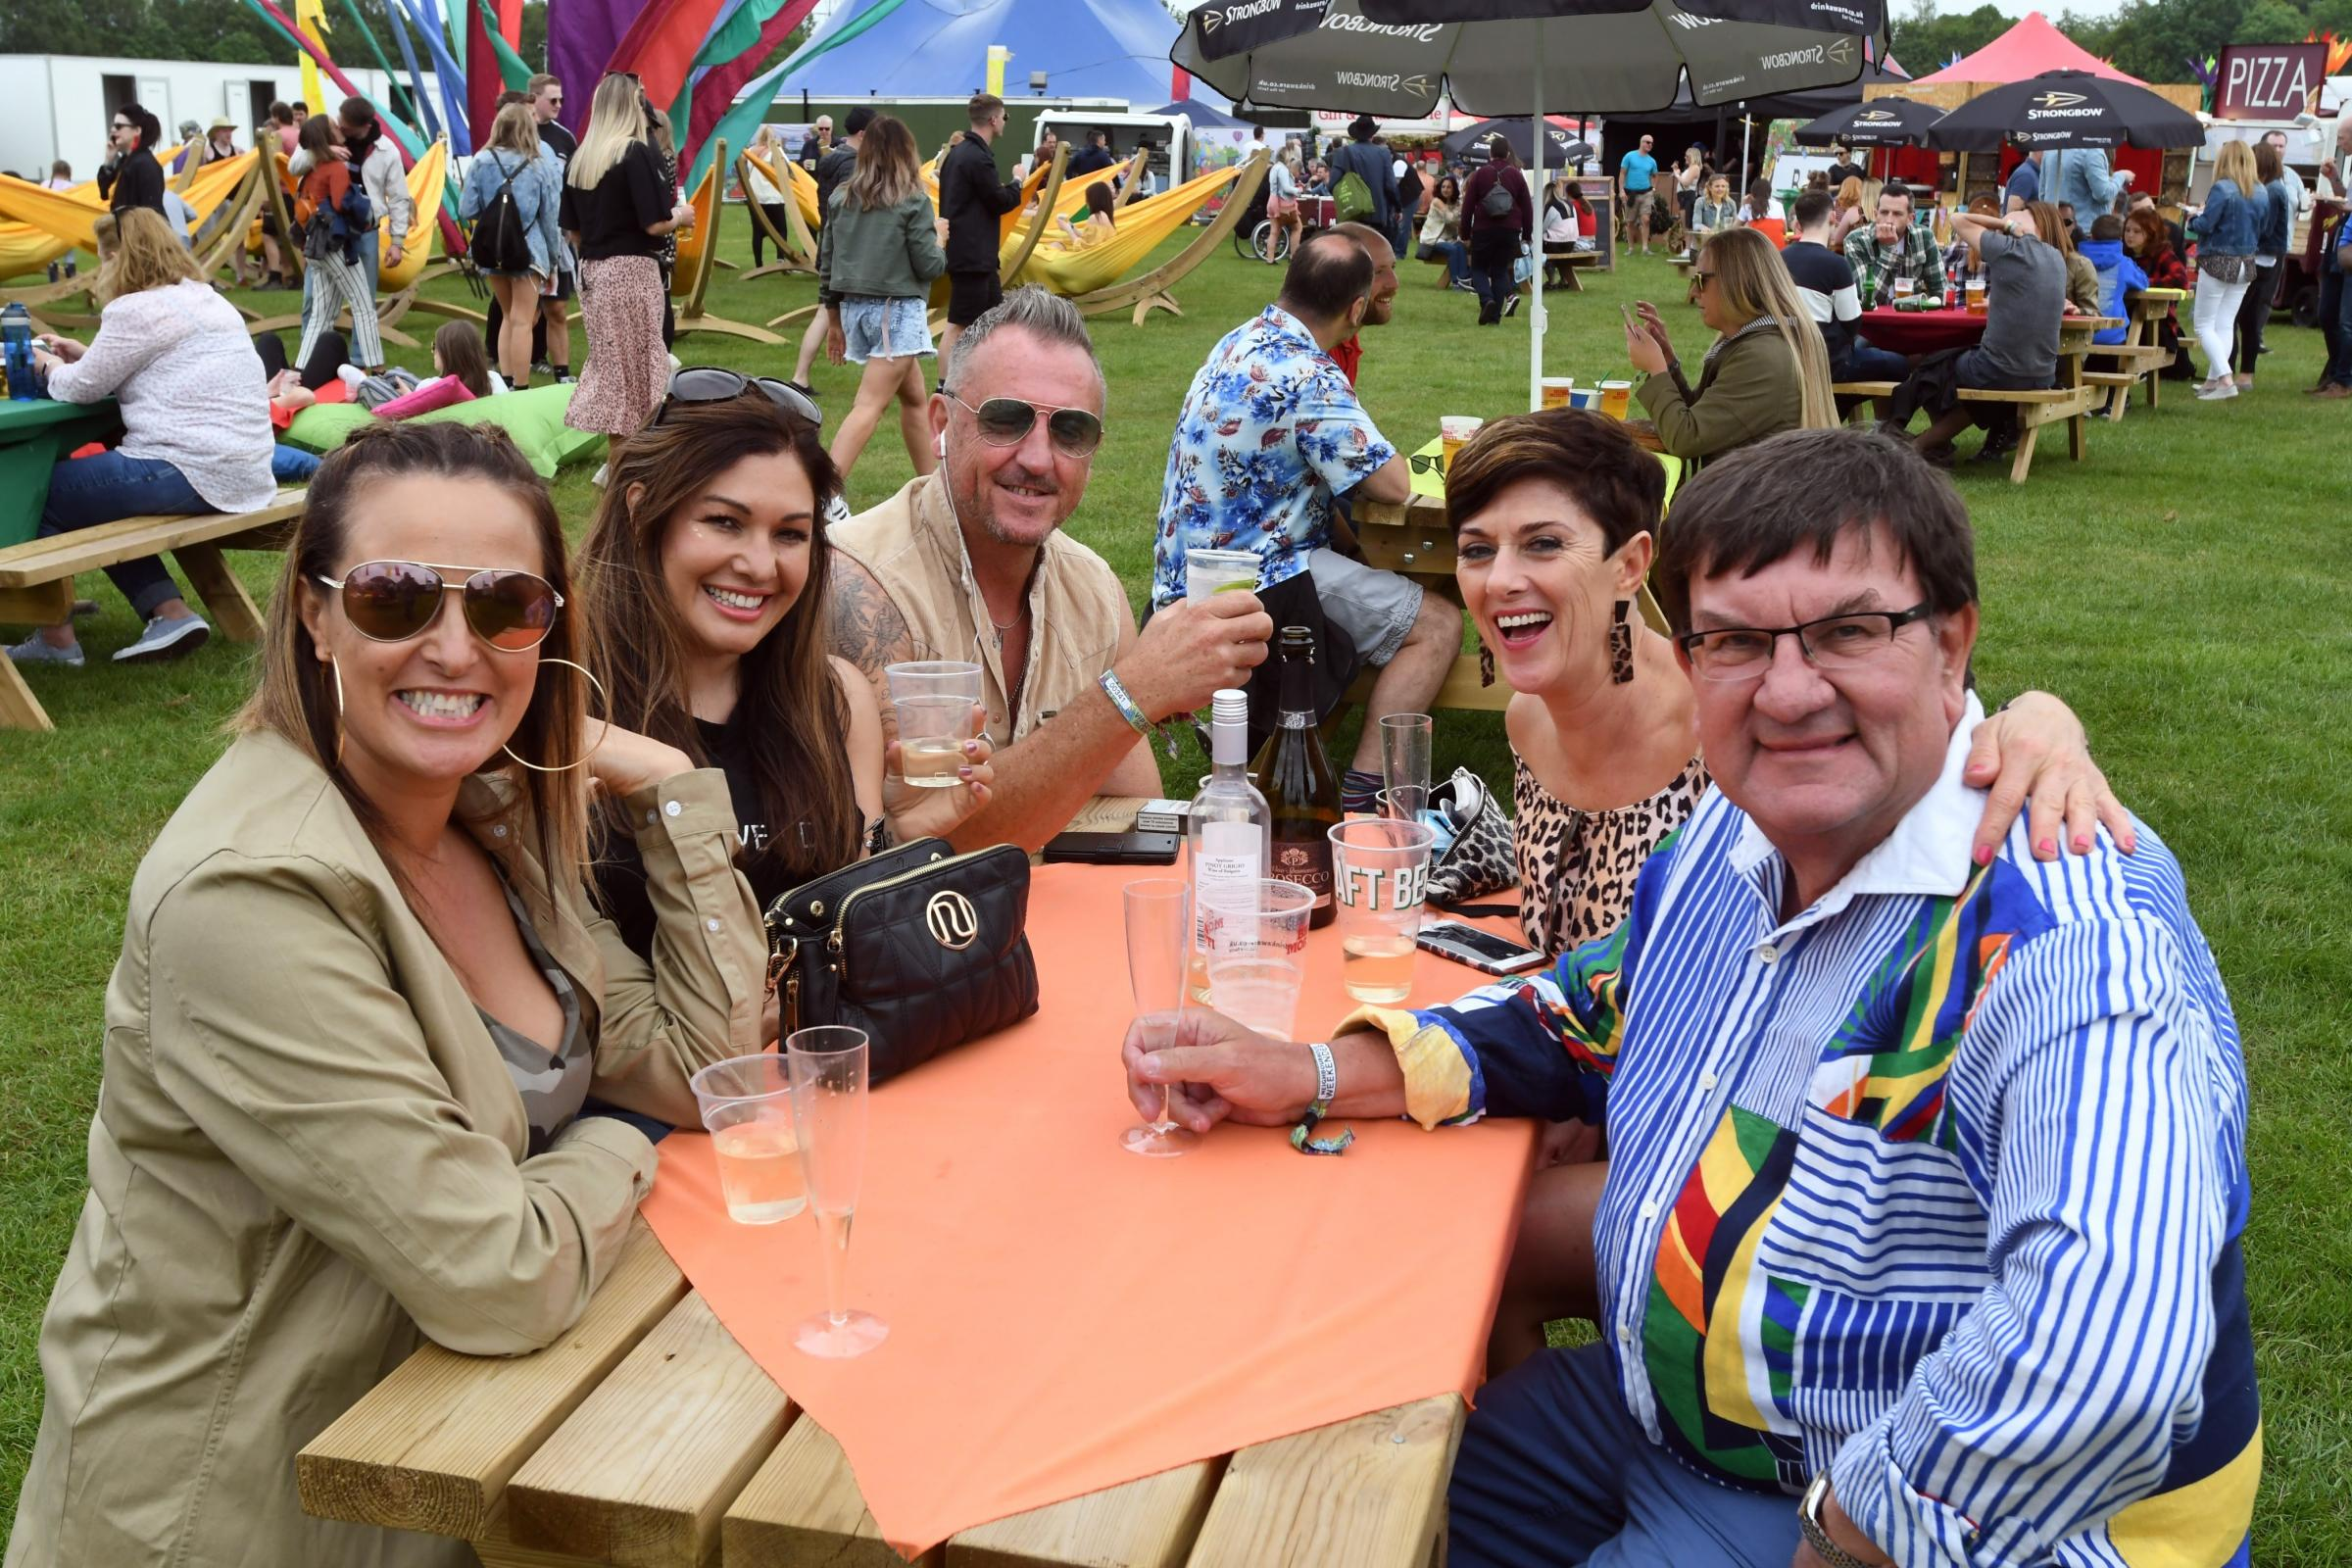 Neighbourhood Weekender success boosts town's reputation